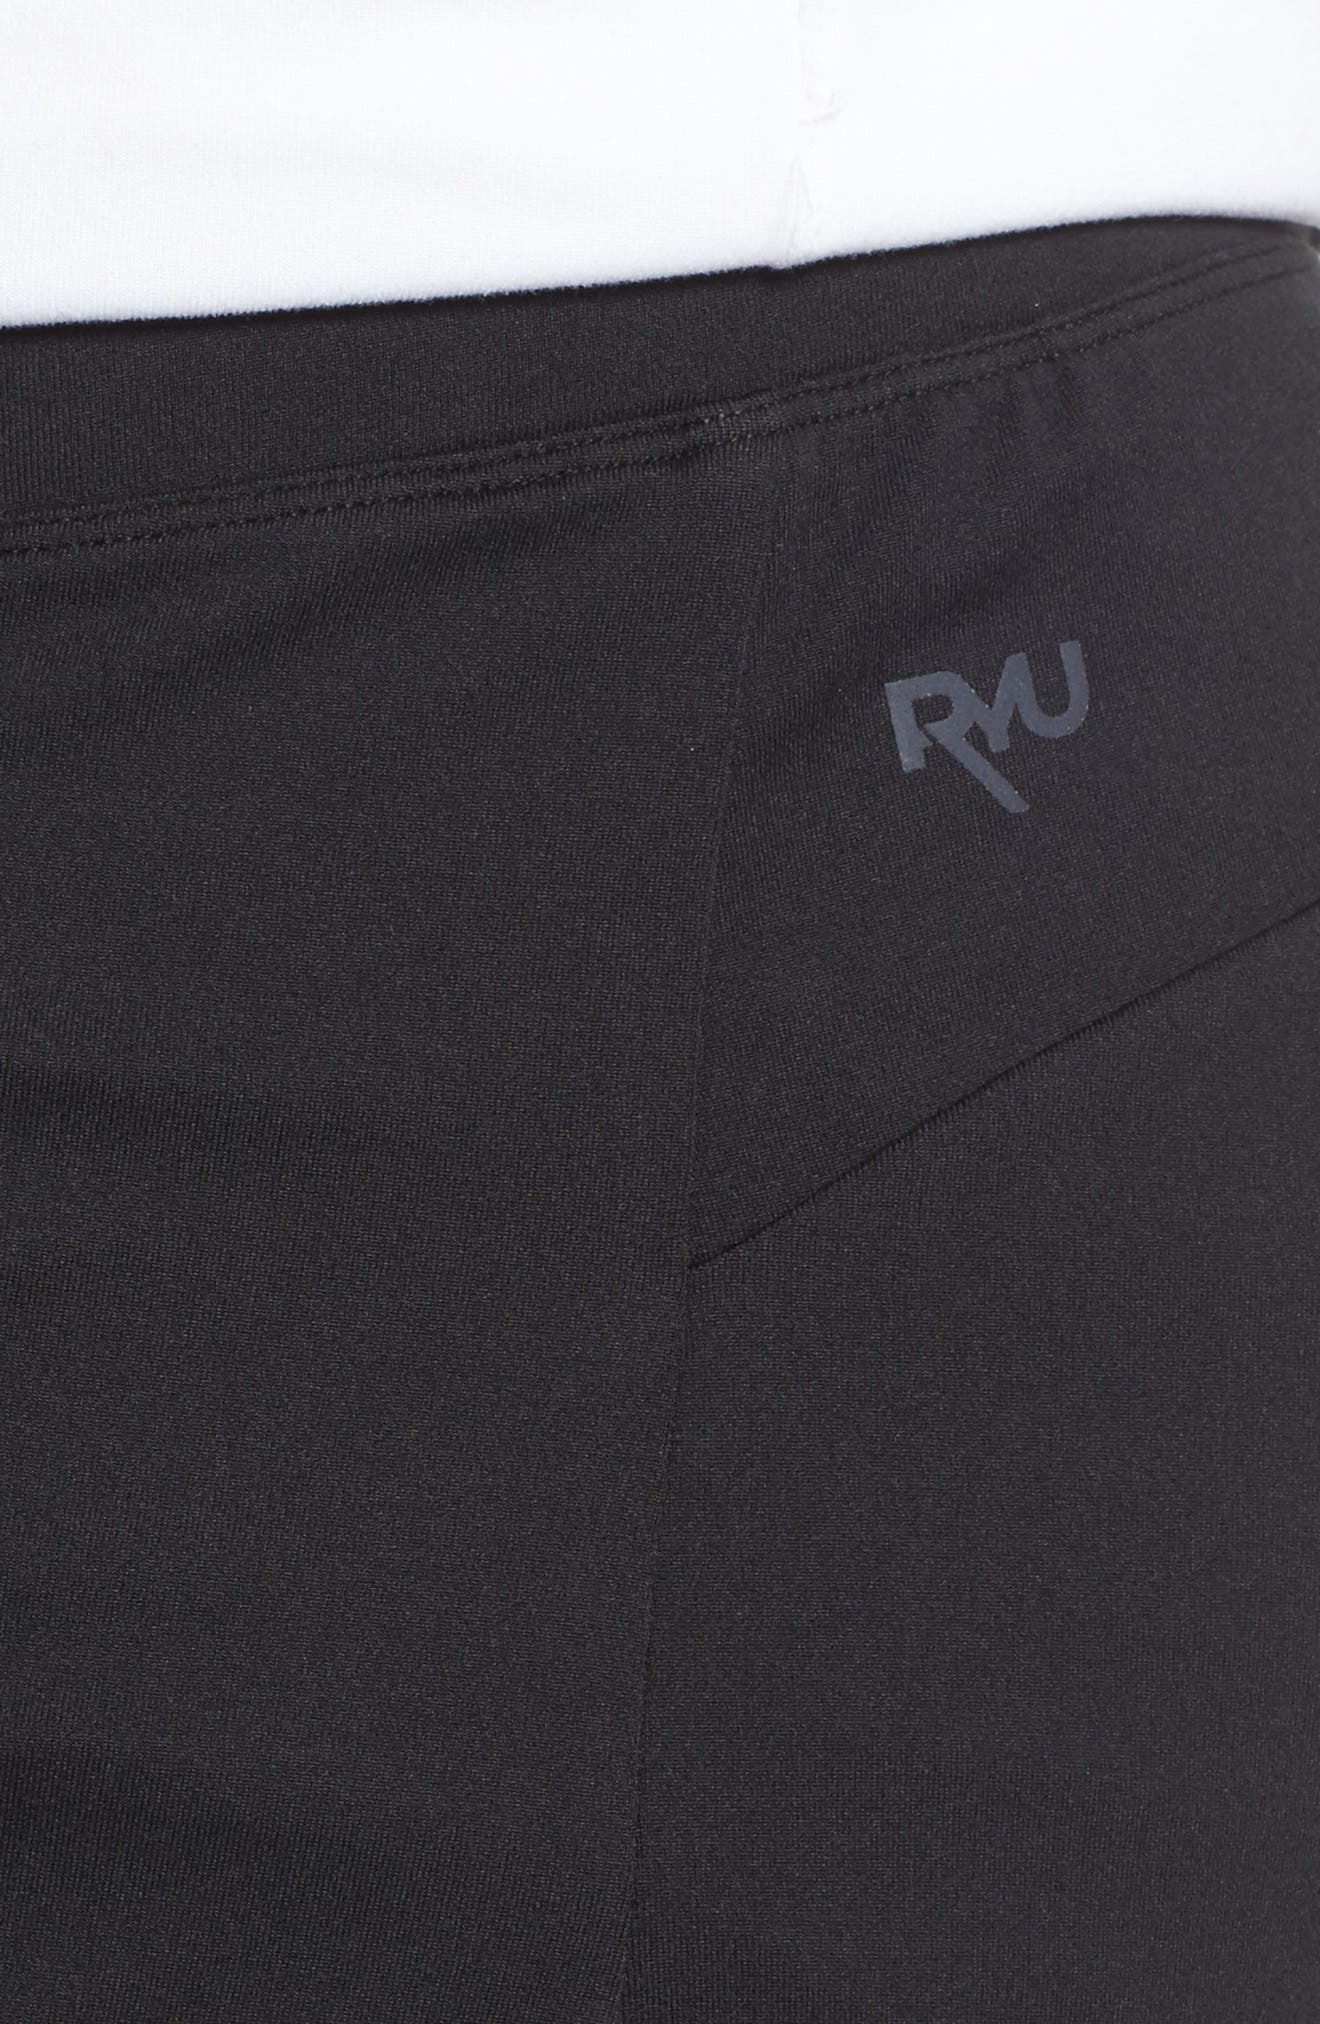 Alternate Image 4  - Ryu State Athletic Shorts